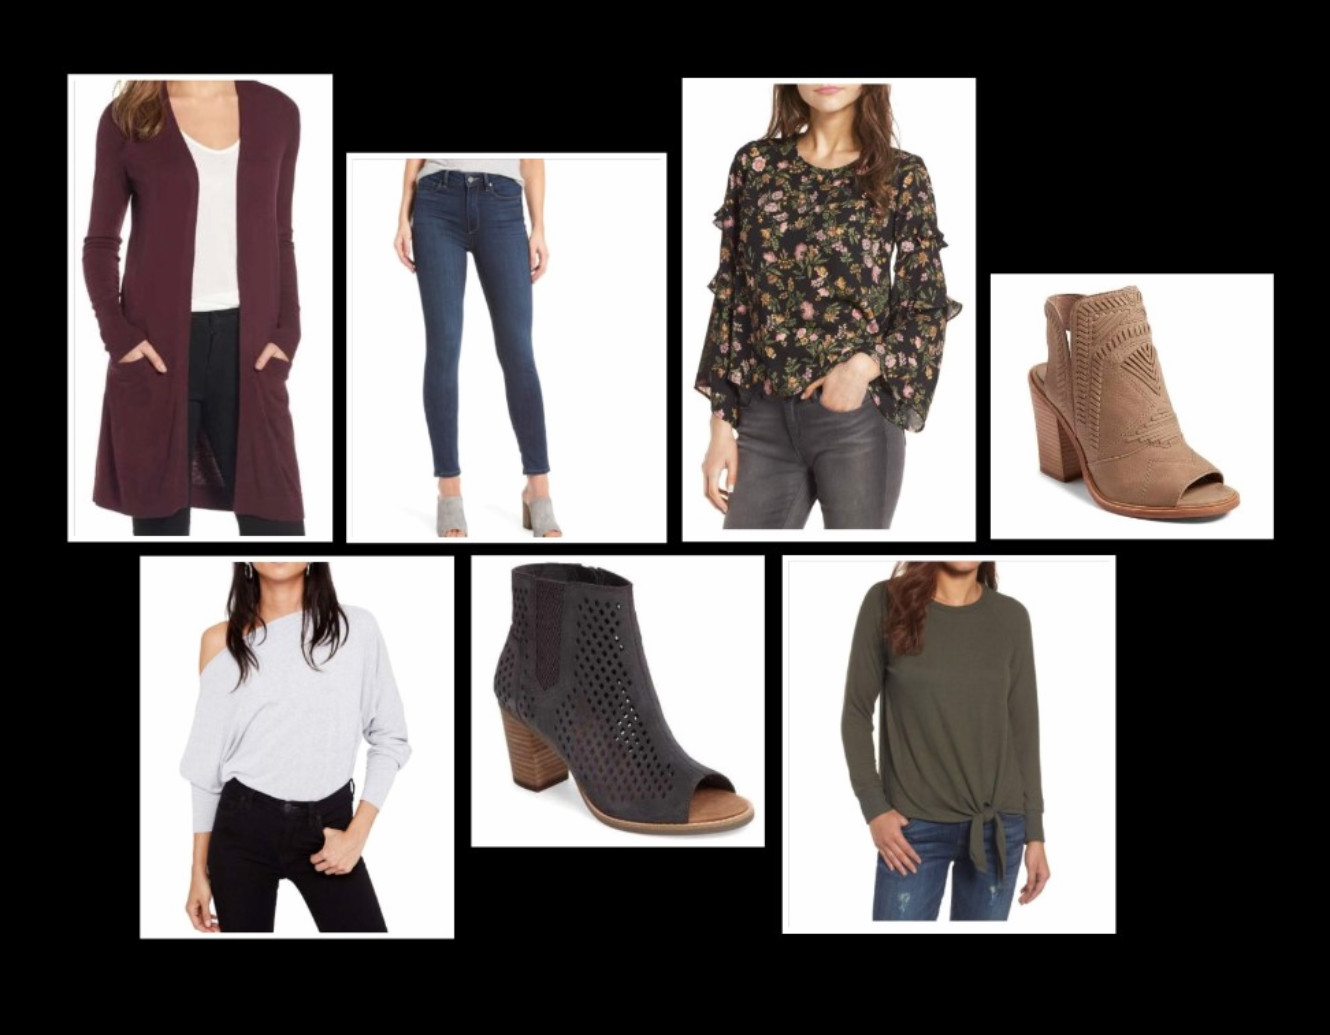 Fall Fashions Collage